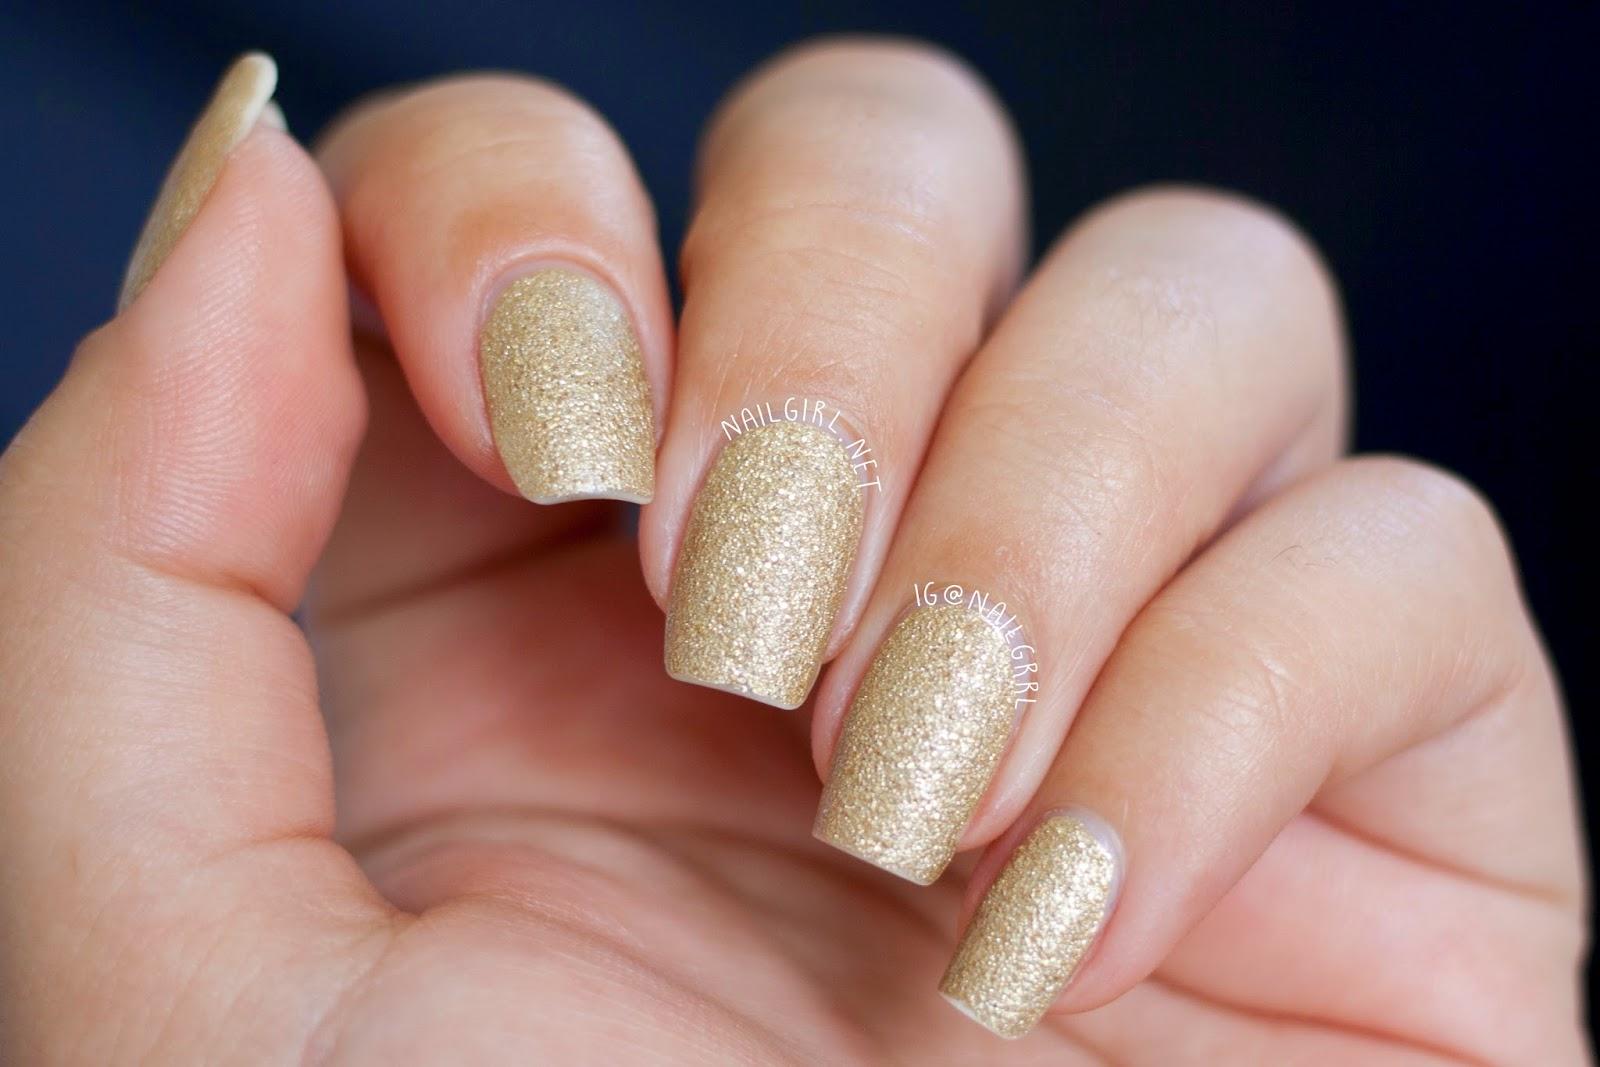 Swatch & Review: OPI James Bond Collection - Honey Ryder | Alexis ...